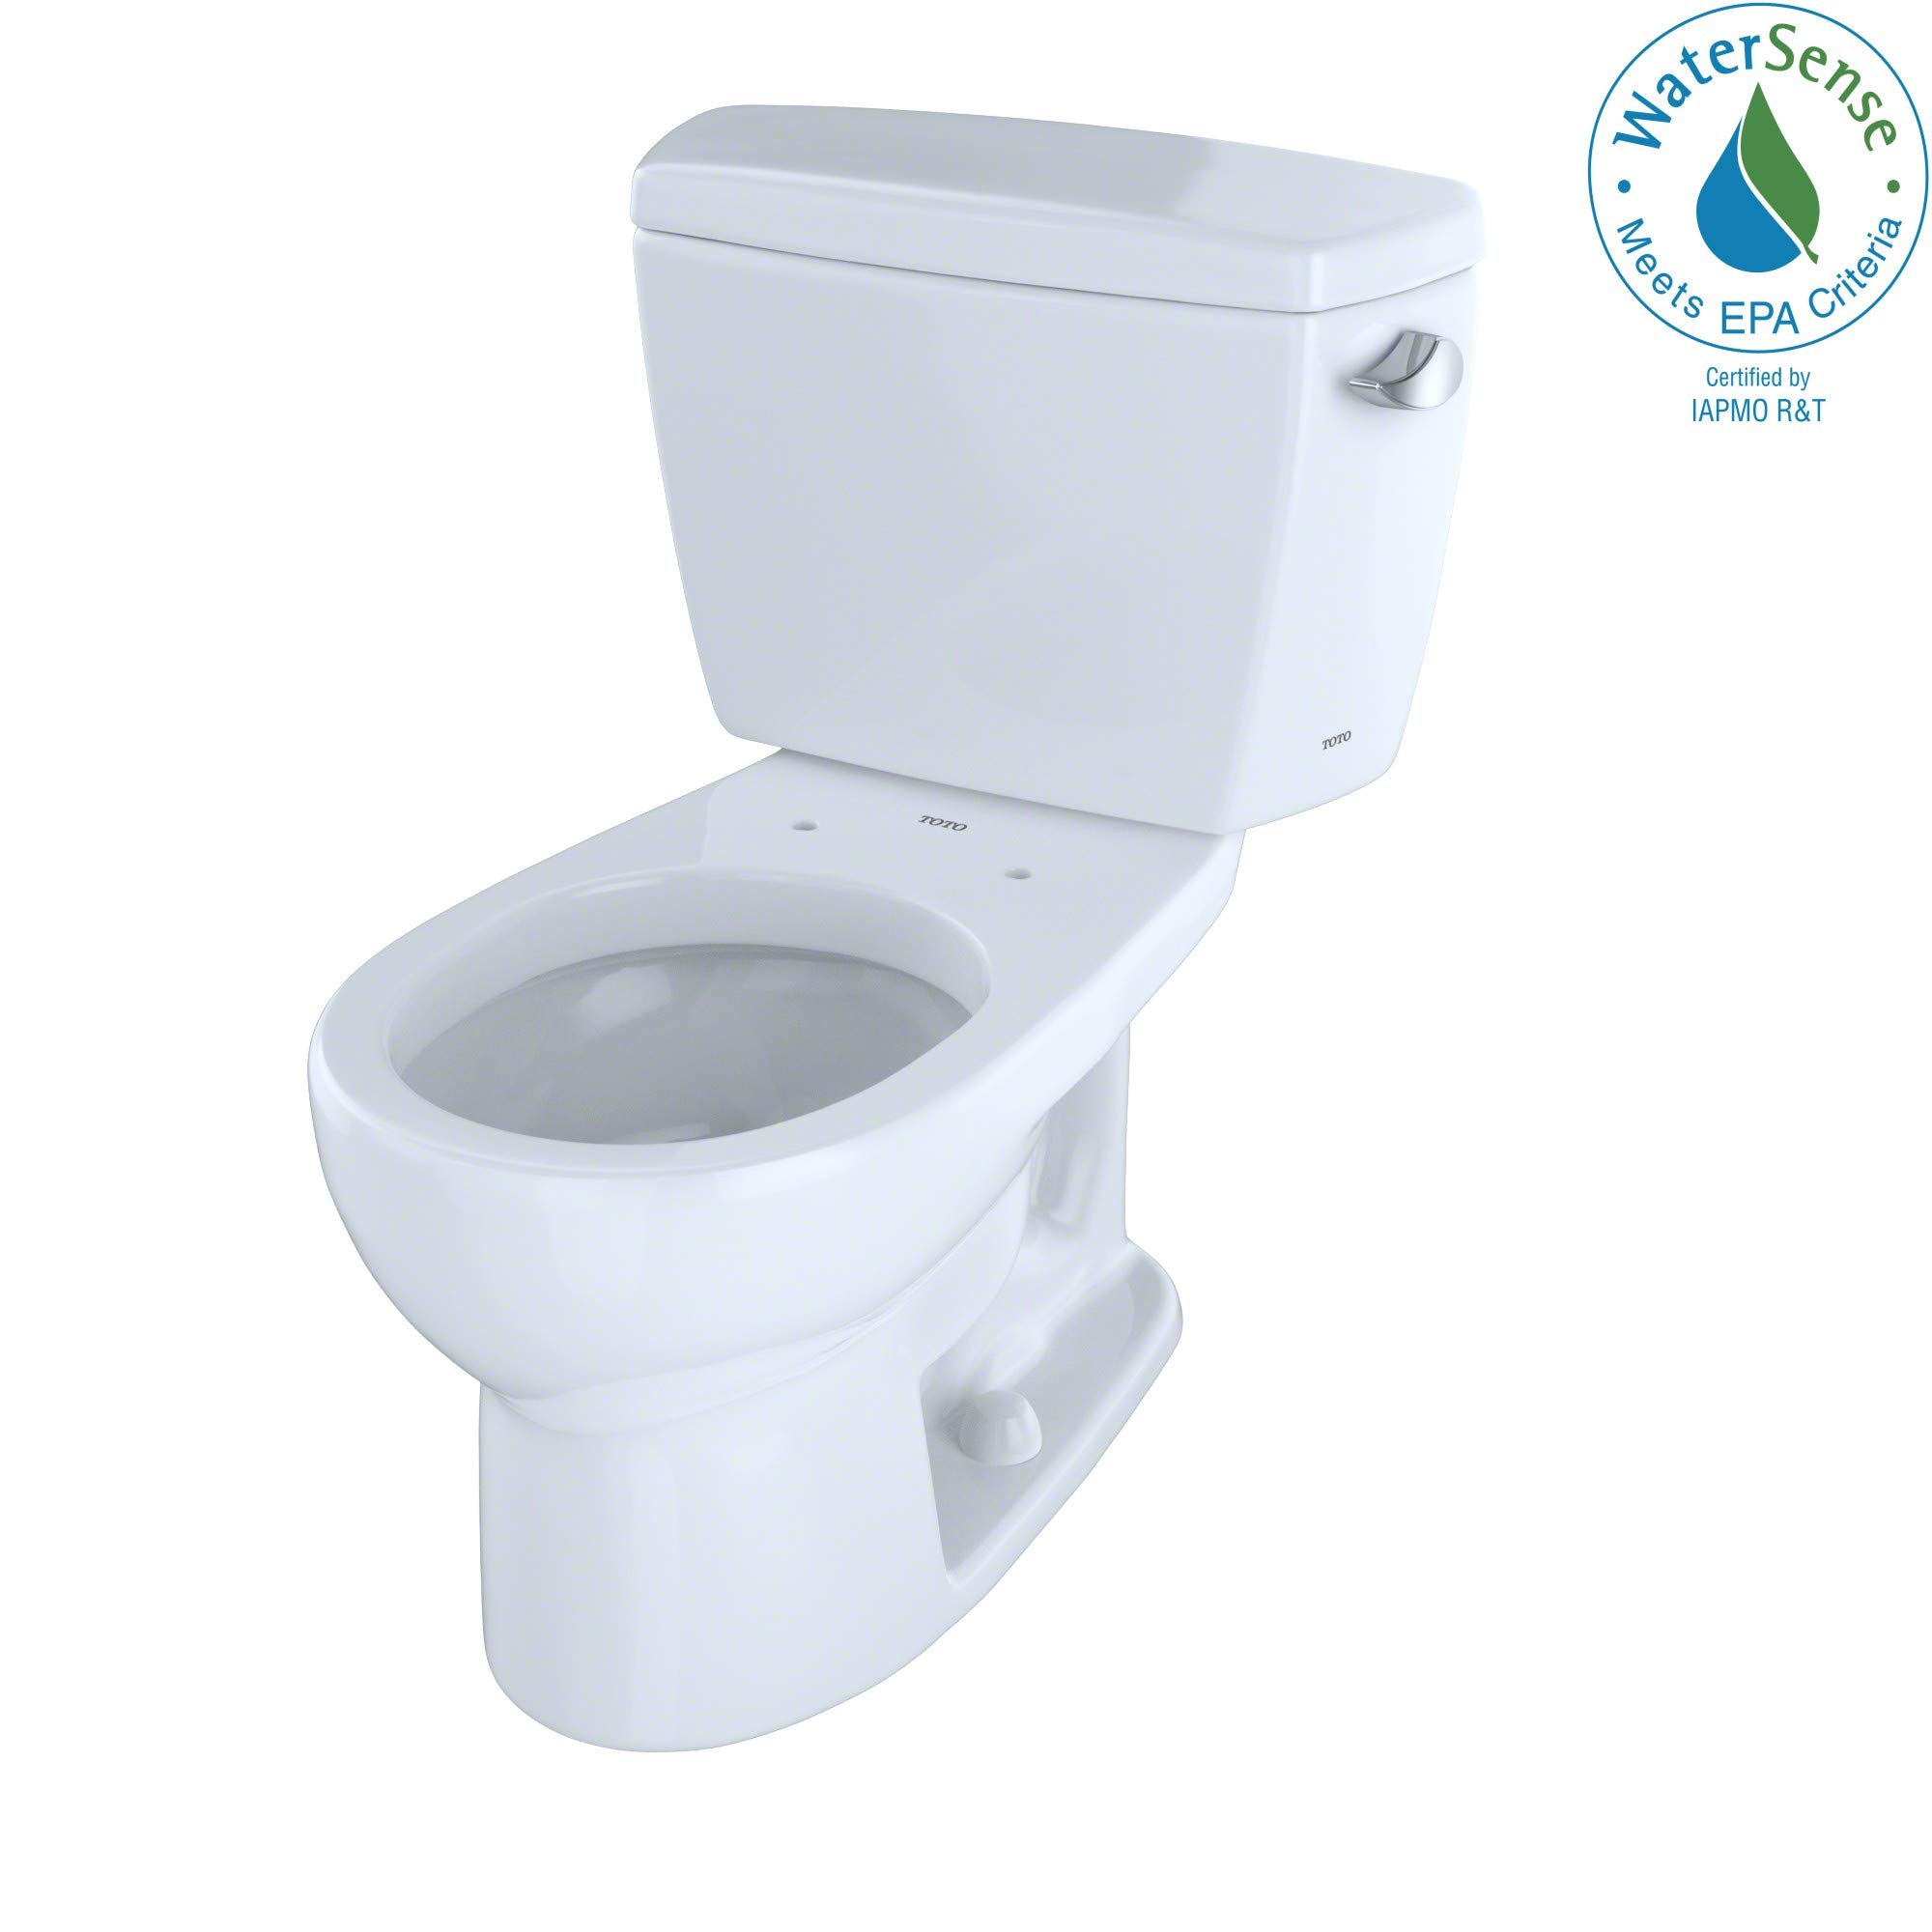 TOTO CST743ER#01 Eco#Drake Round Bowl Toilet with Right Hand Tank C743E + St743Er, Cotton White by TOTO